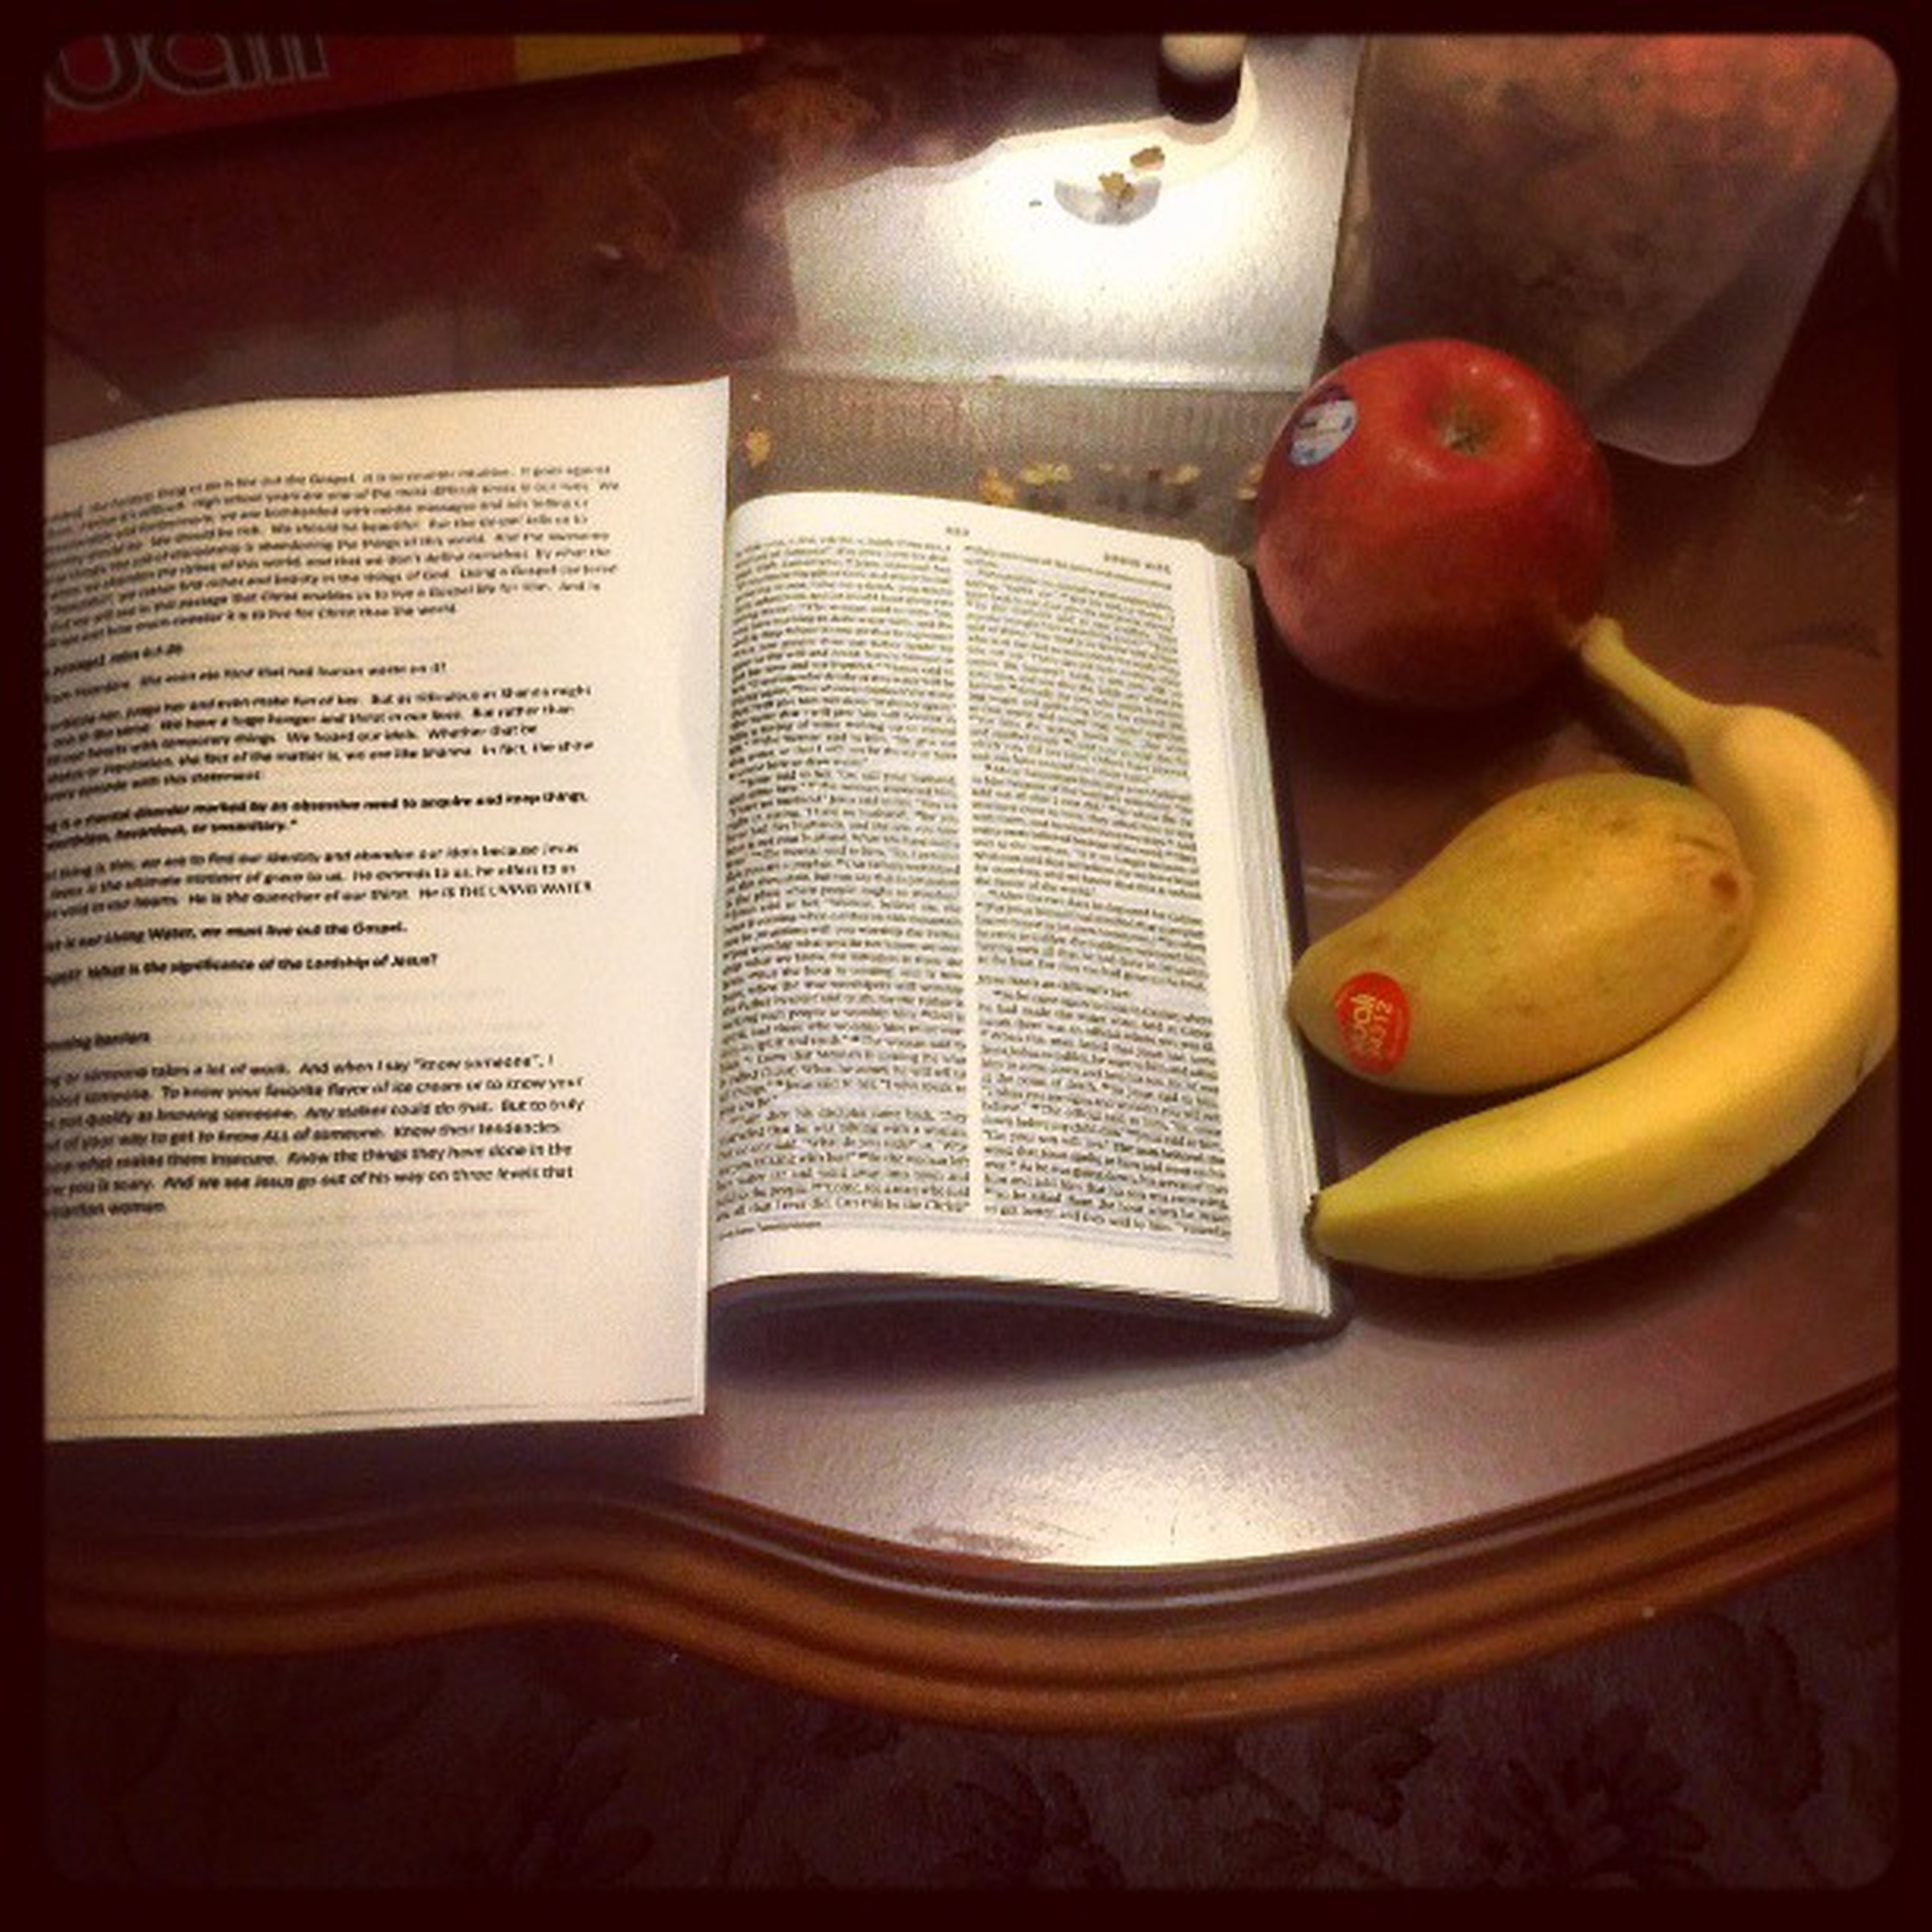 Pre sermon flow. Always a privilege. My soul magnifies the Lord. (Lk. 1:46) Doubleduty